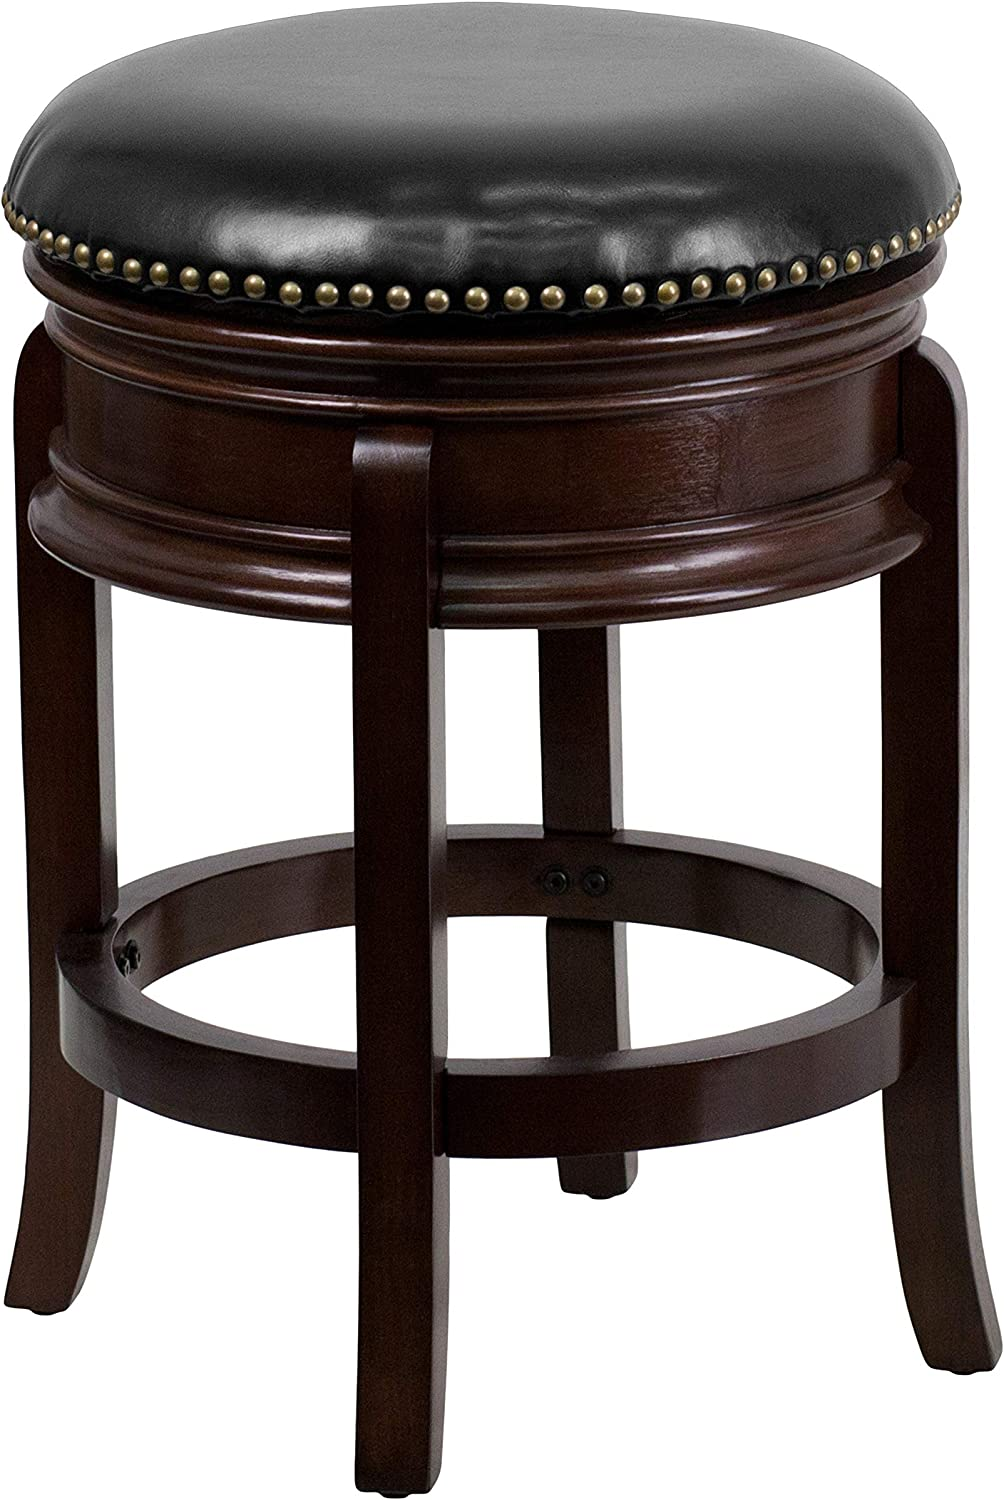 Flash Furniture 24'' High Backless Cappuccino Wood Counter Height Stool with Carved Apron and Black Leather Swivel Seat